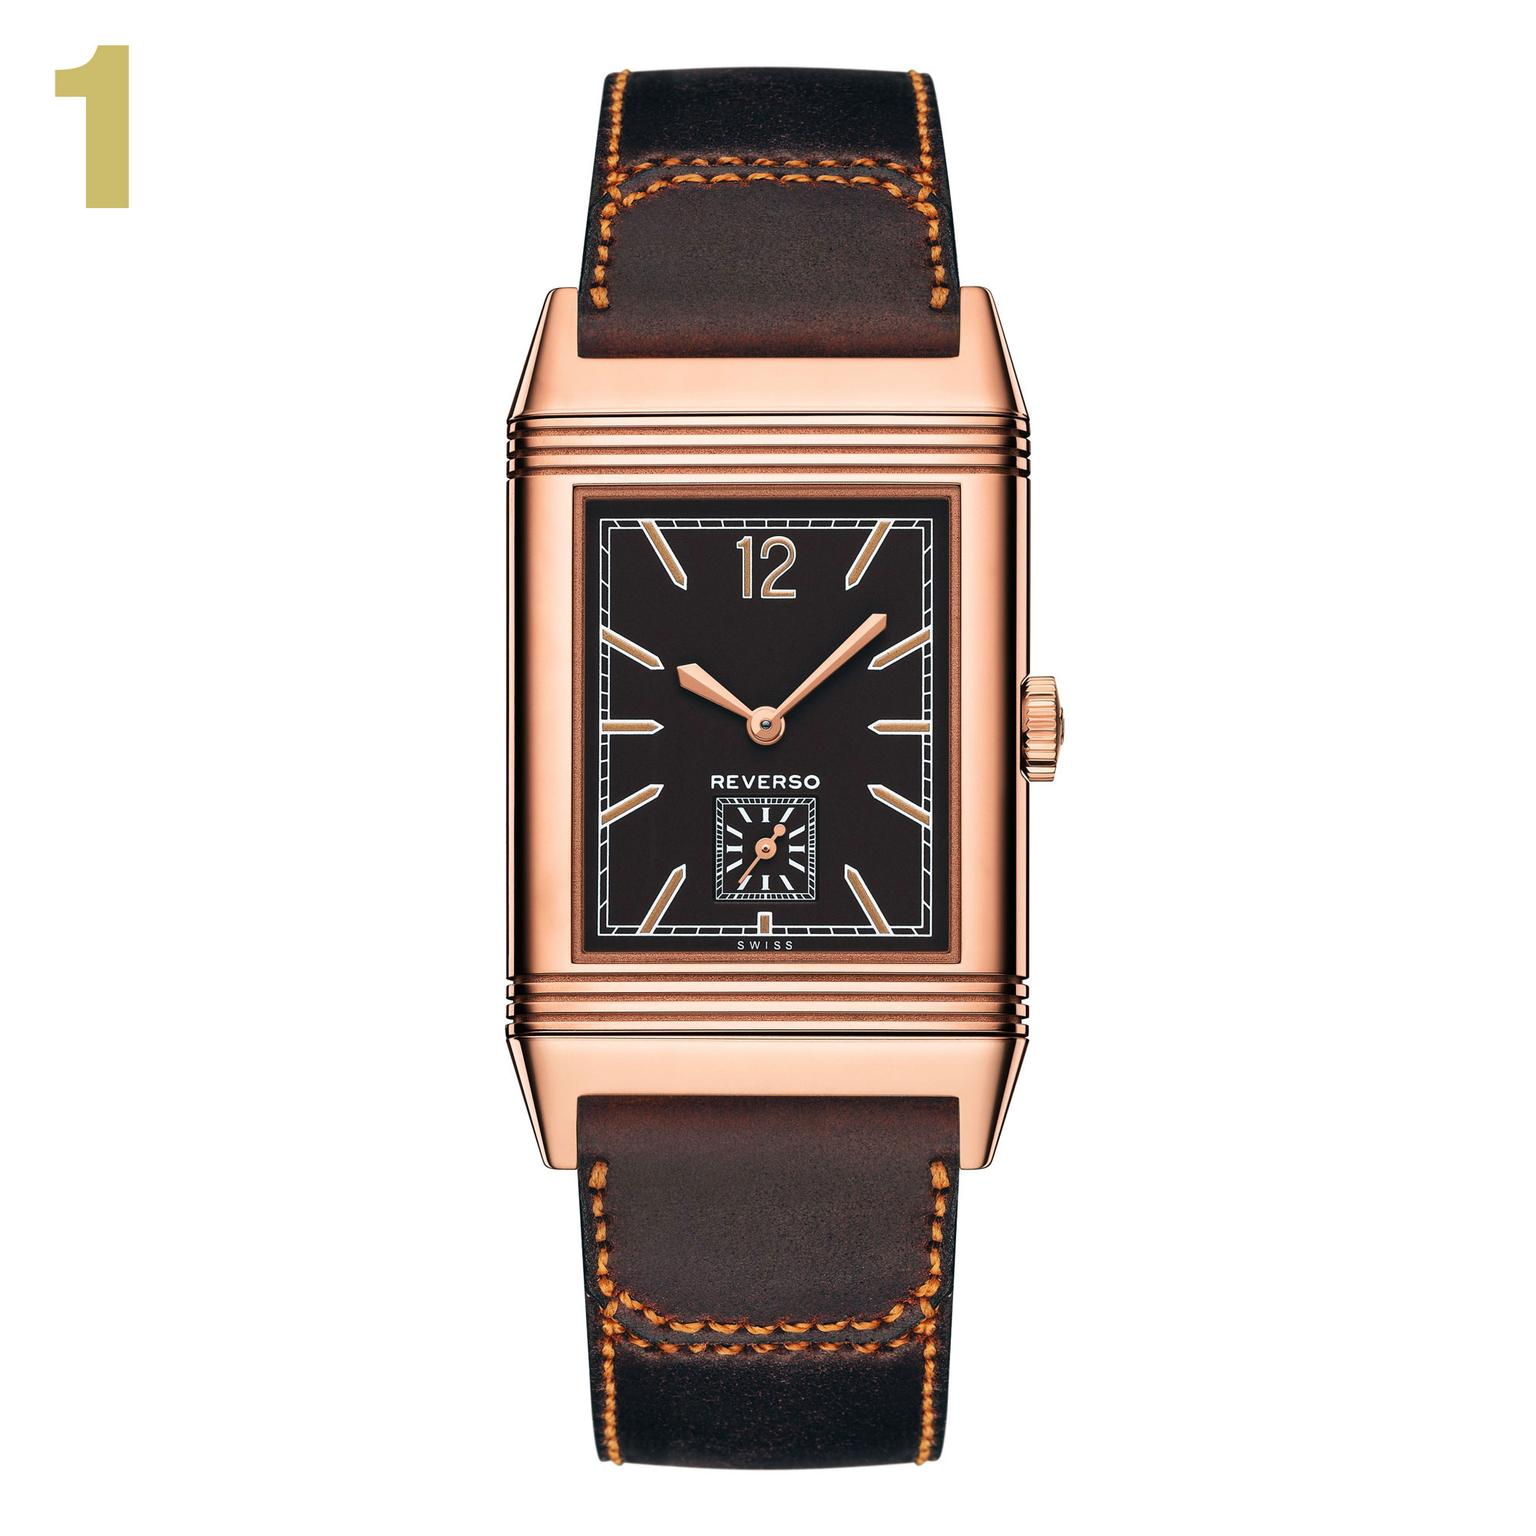 1 Jaeger LeCoultre Grande Reverso Ultra Thin 1931 watch